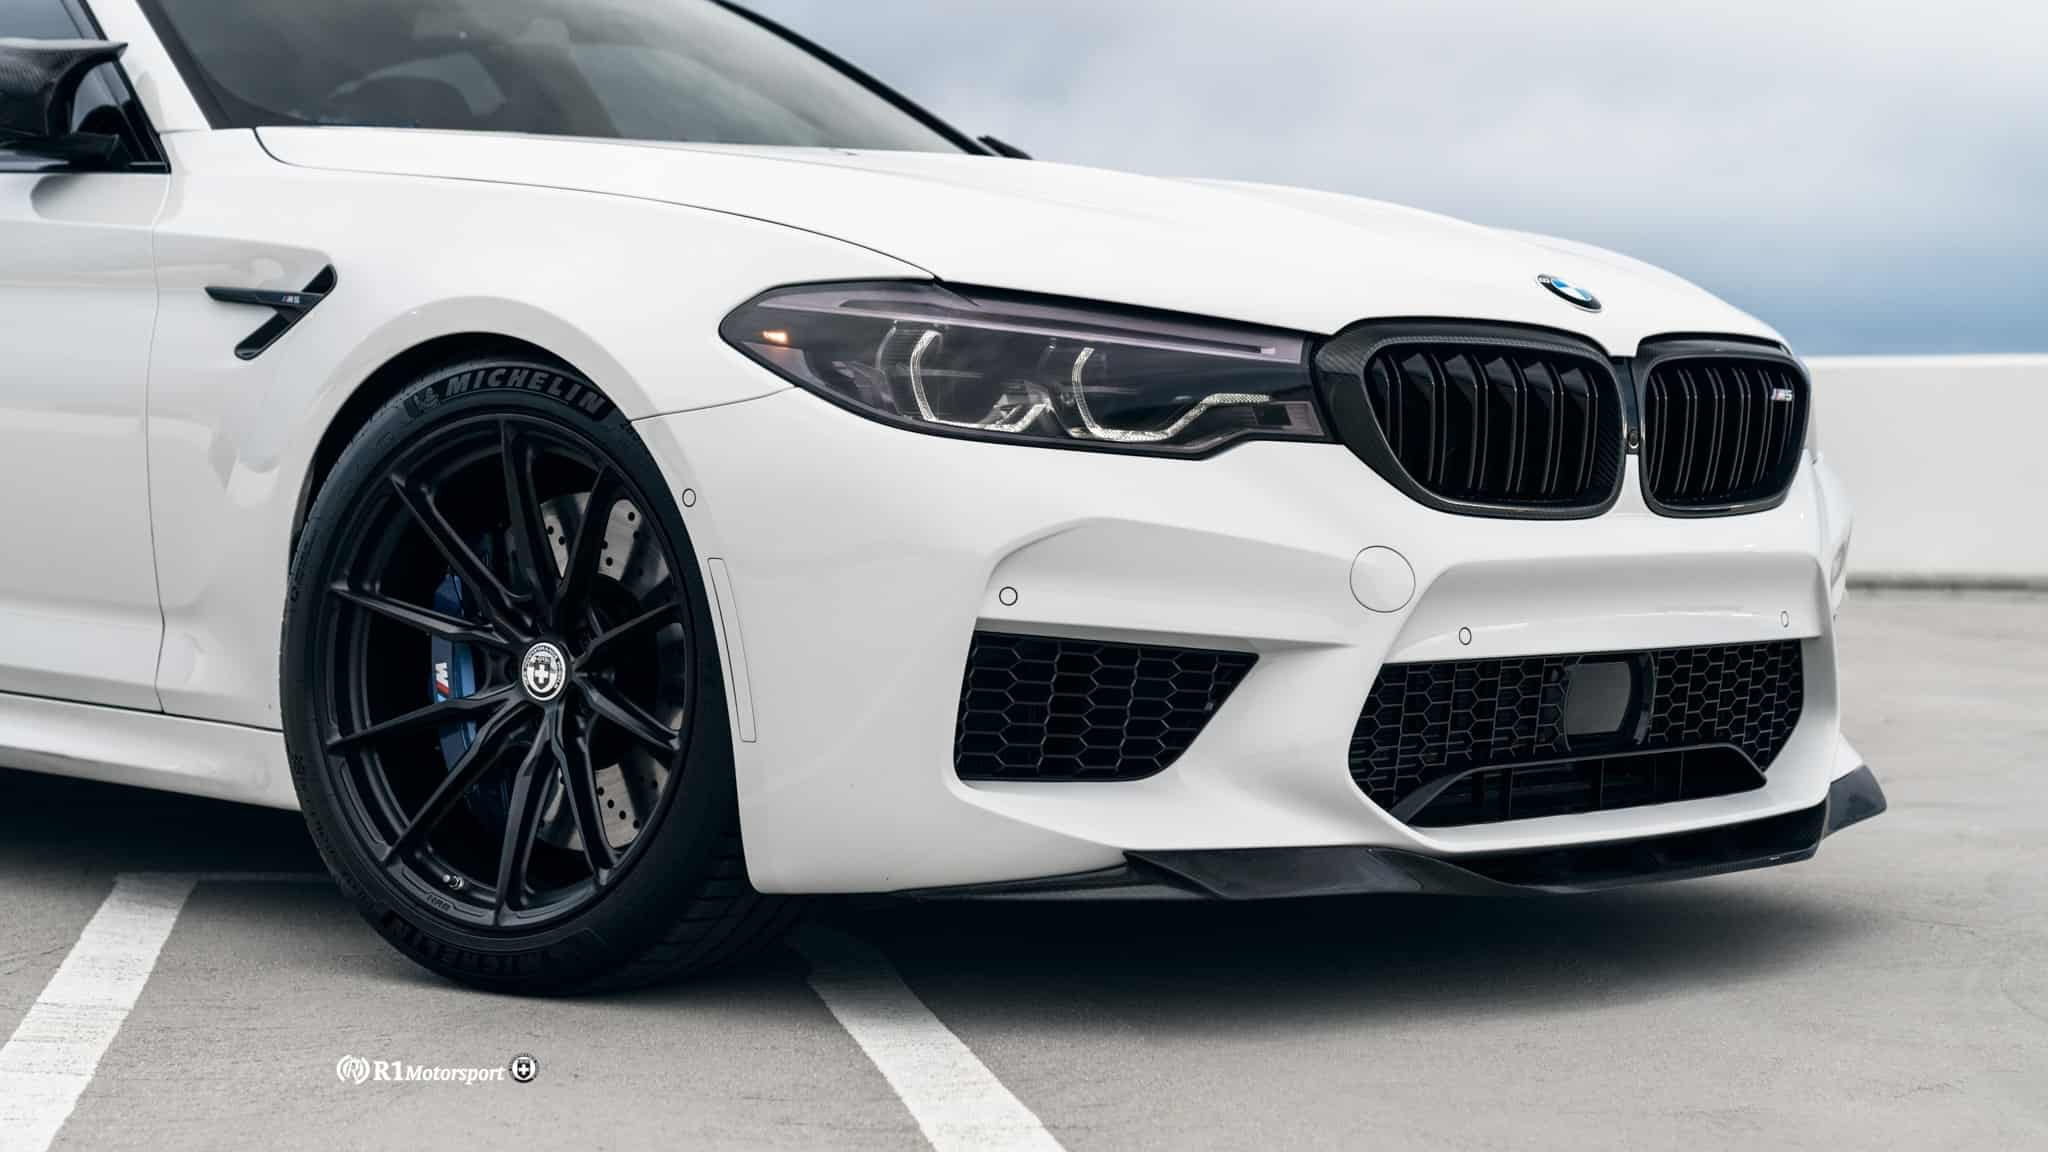 BMW M5 F90 tuning by R1 Motorsport